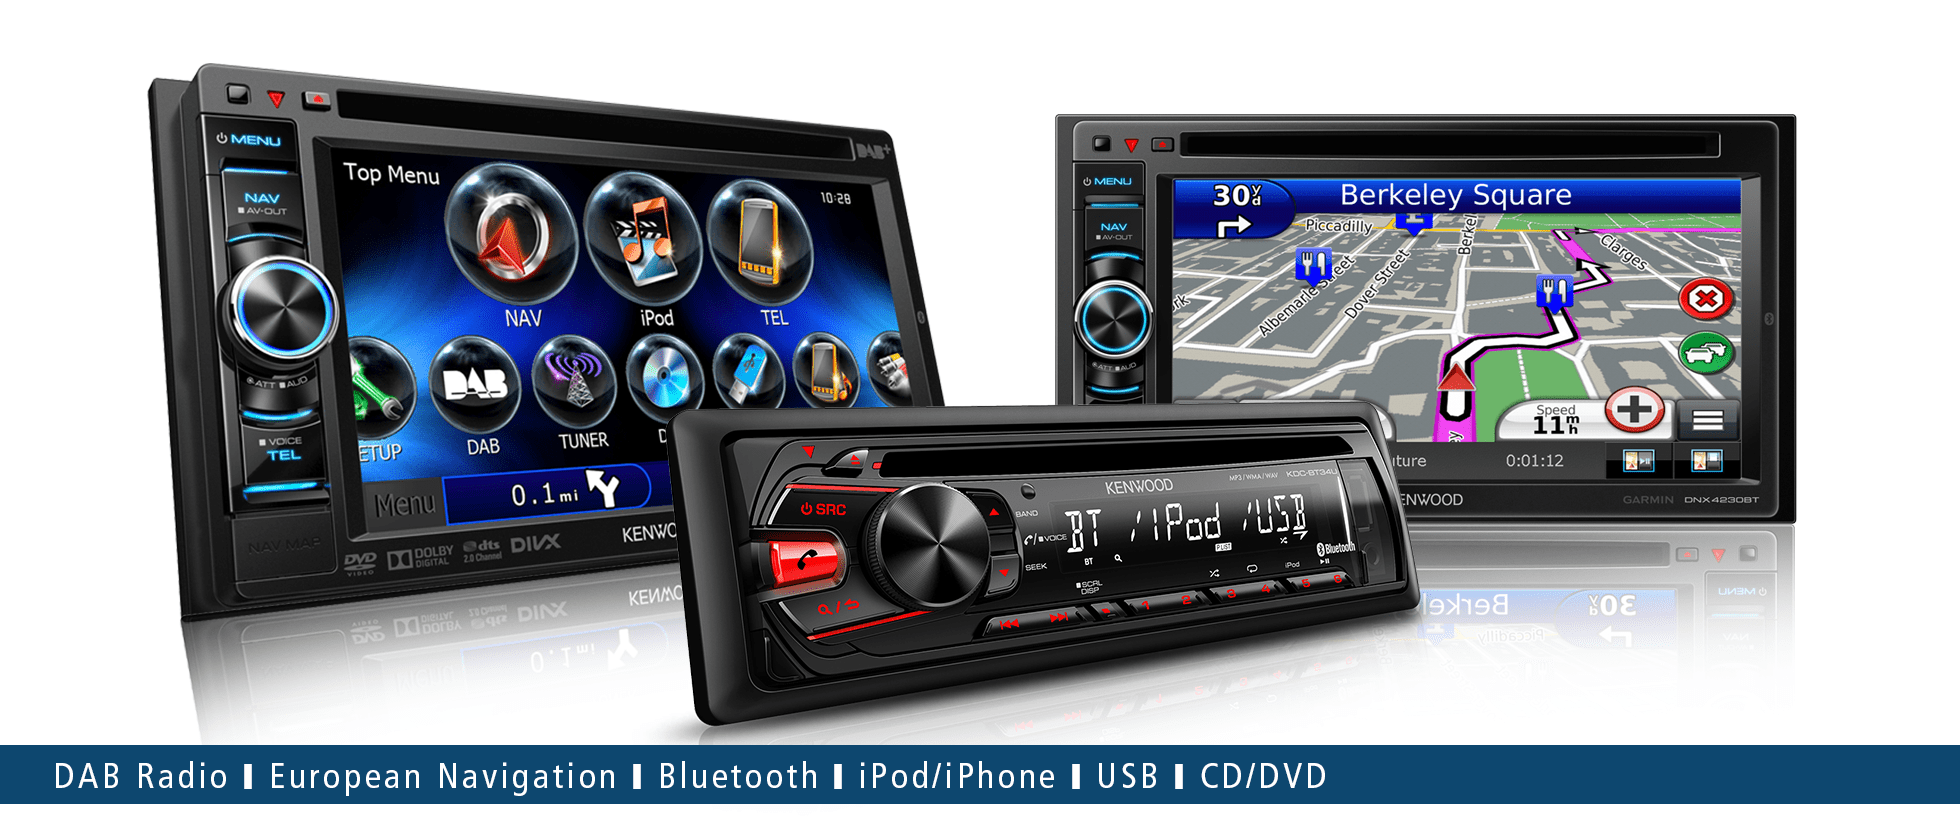 Best Free Sat Nav For Iphone Mitsubishi Sat Nav Mitsubishi Multimedia System